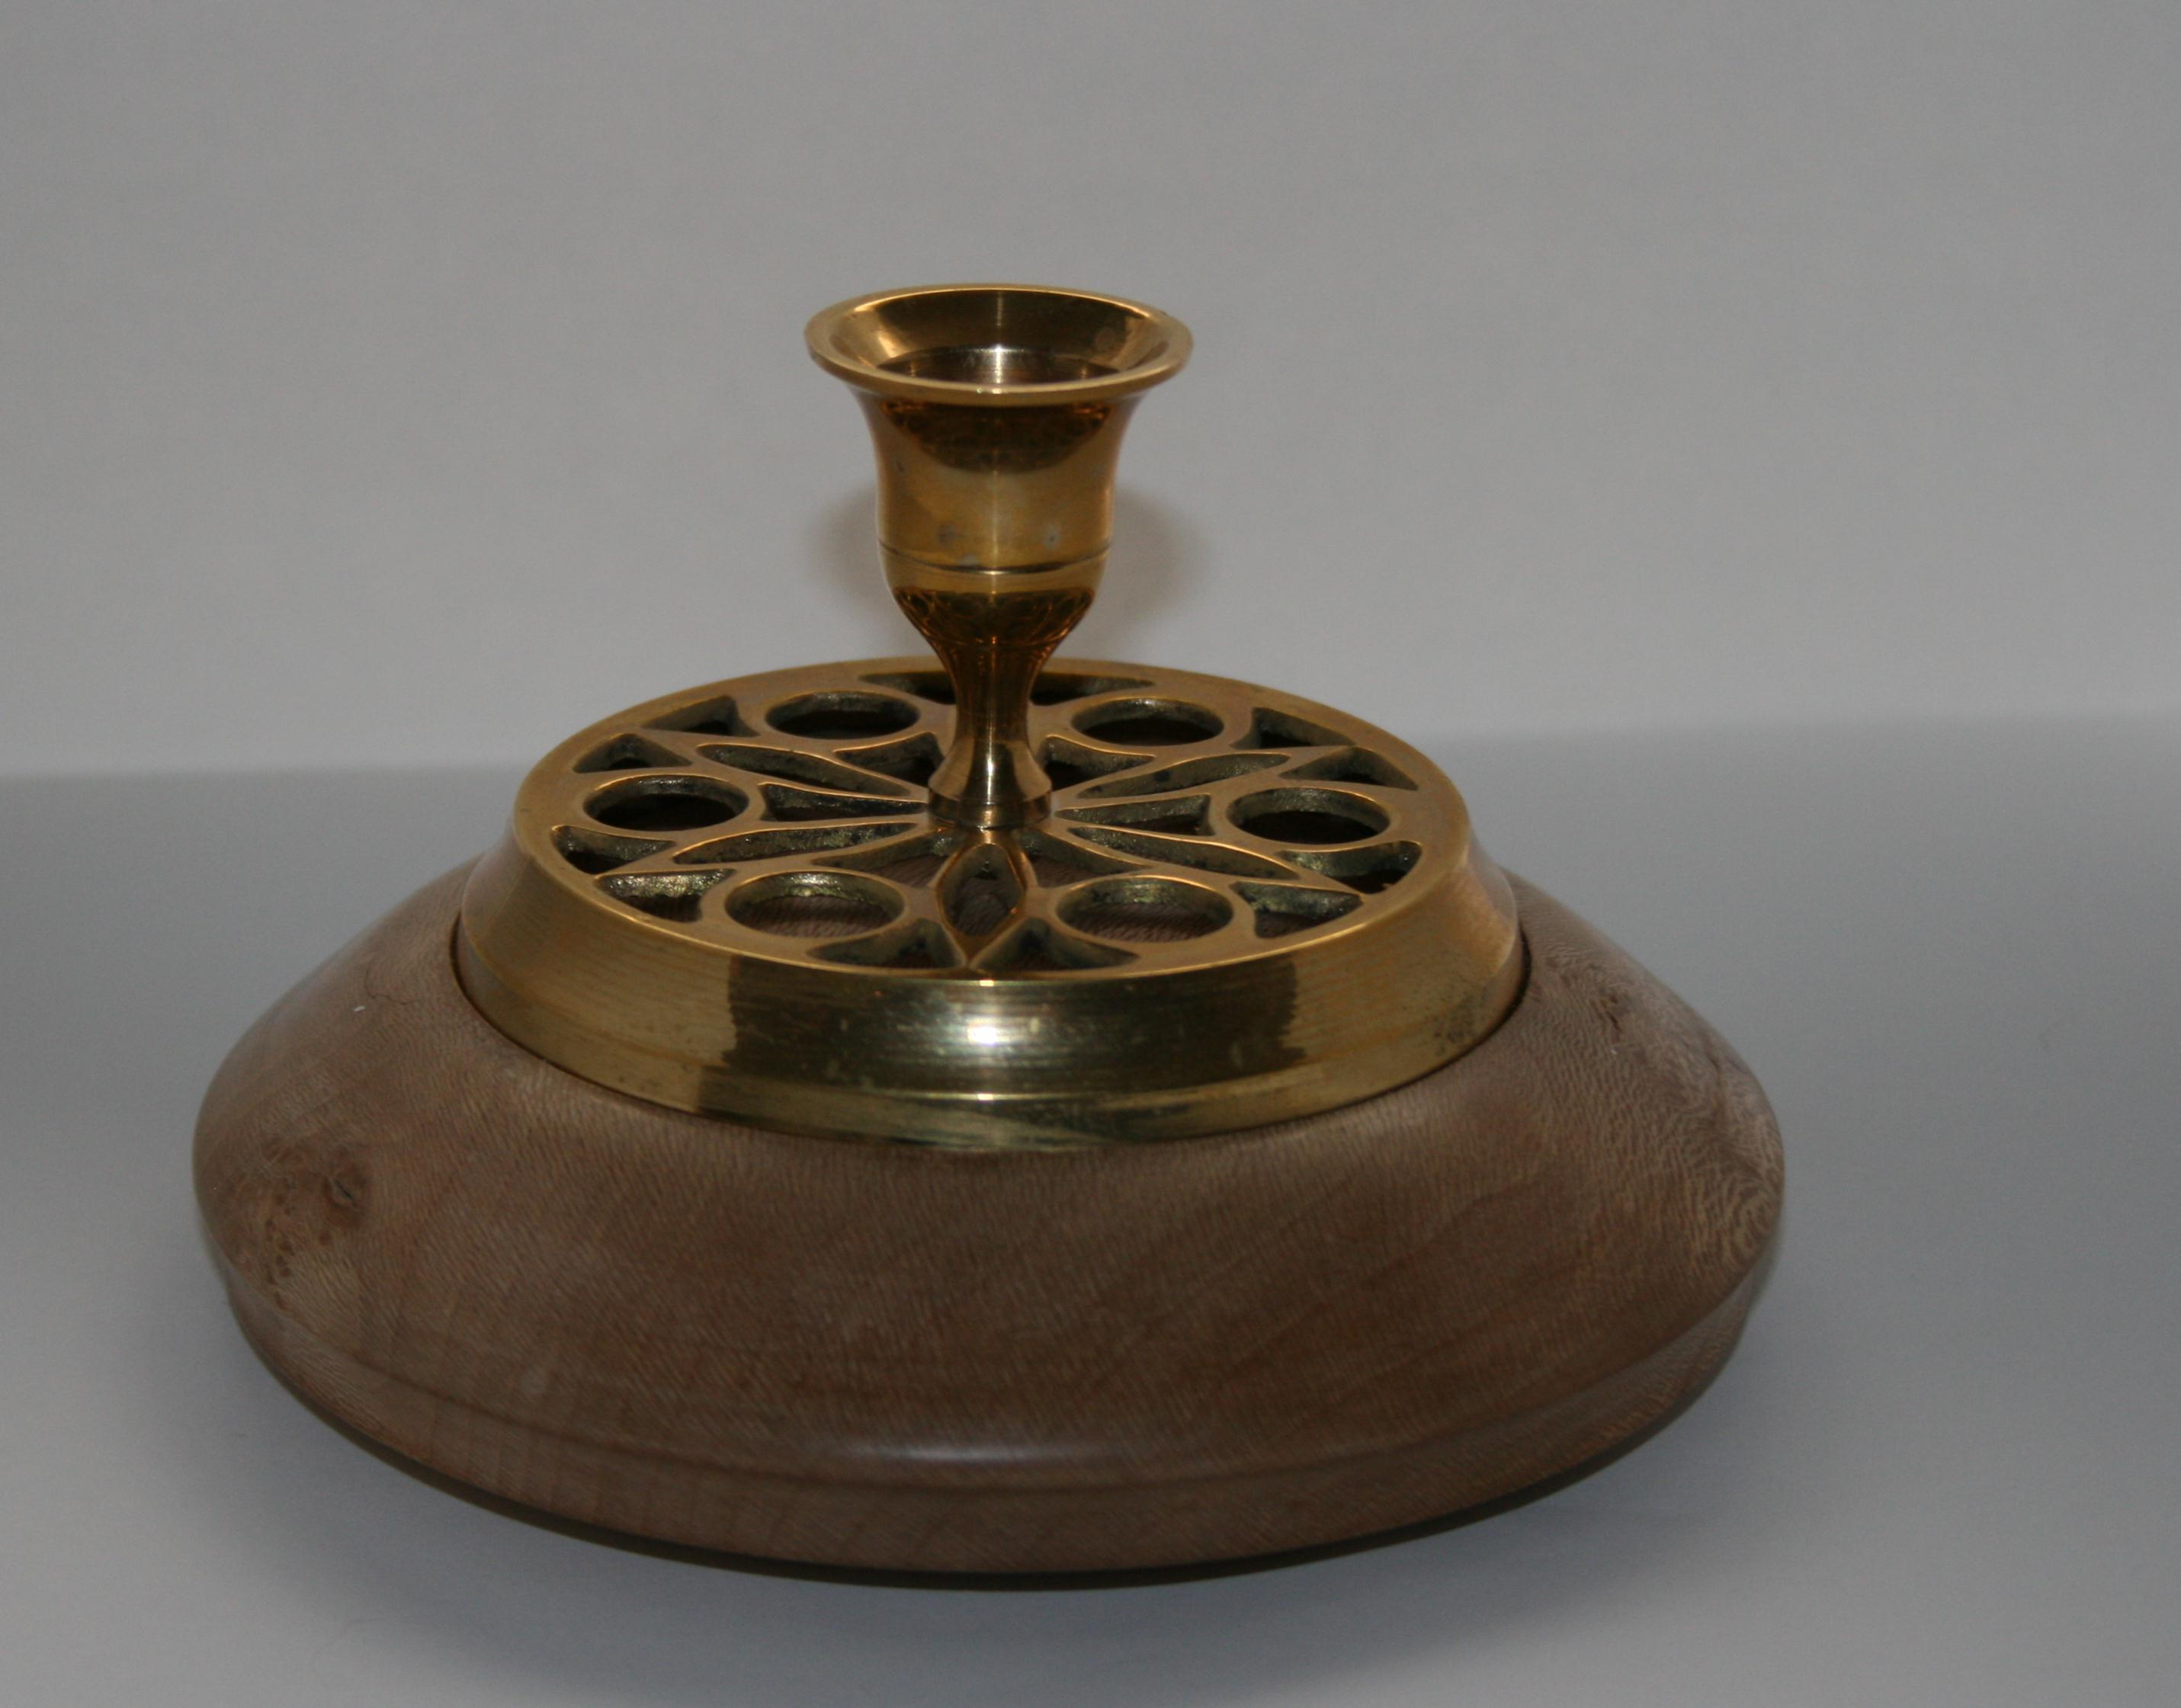 Candle Holder on London Plain base